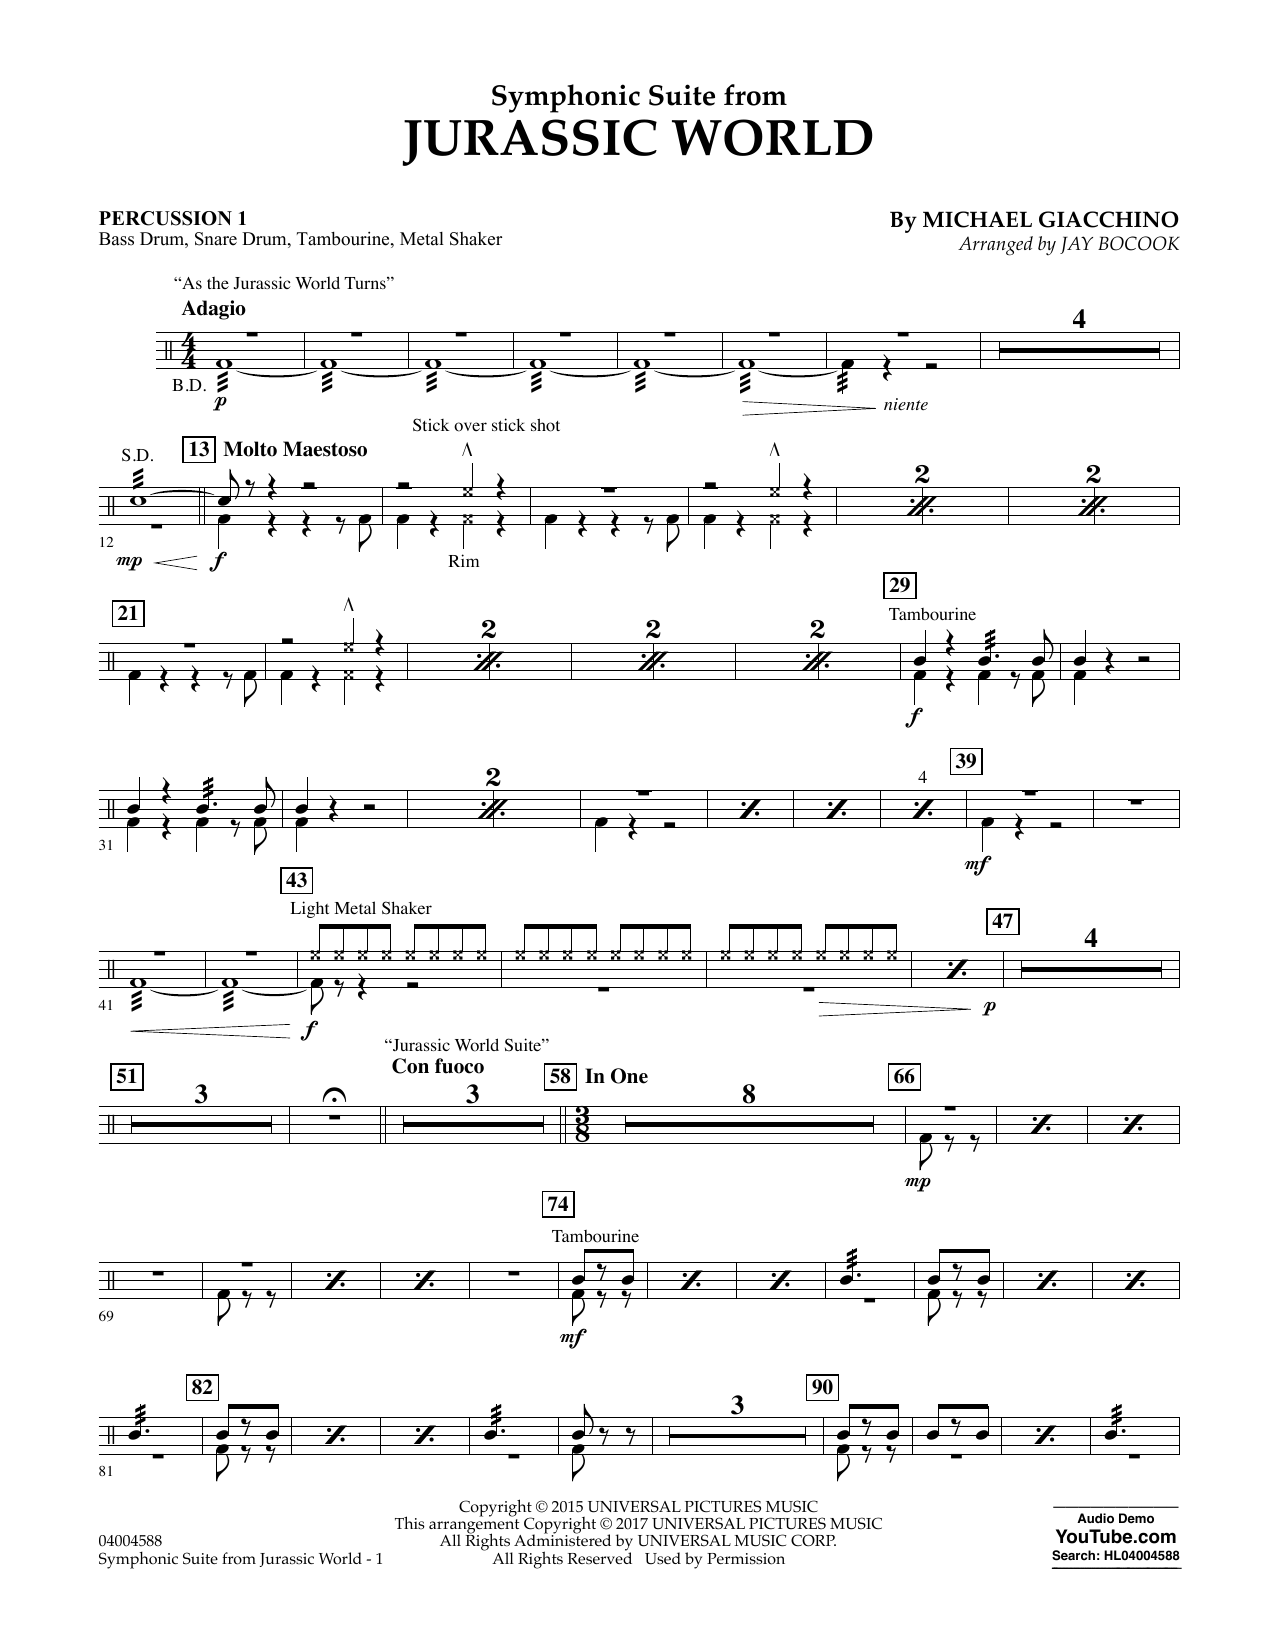 Jurassic World (Symphonic Suite) - Percussion 1 Sheet Music